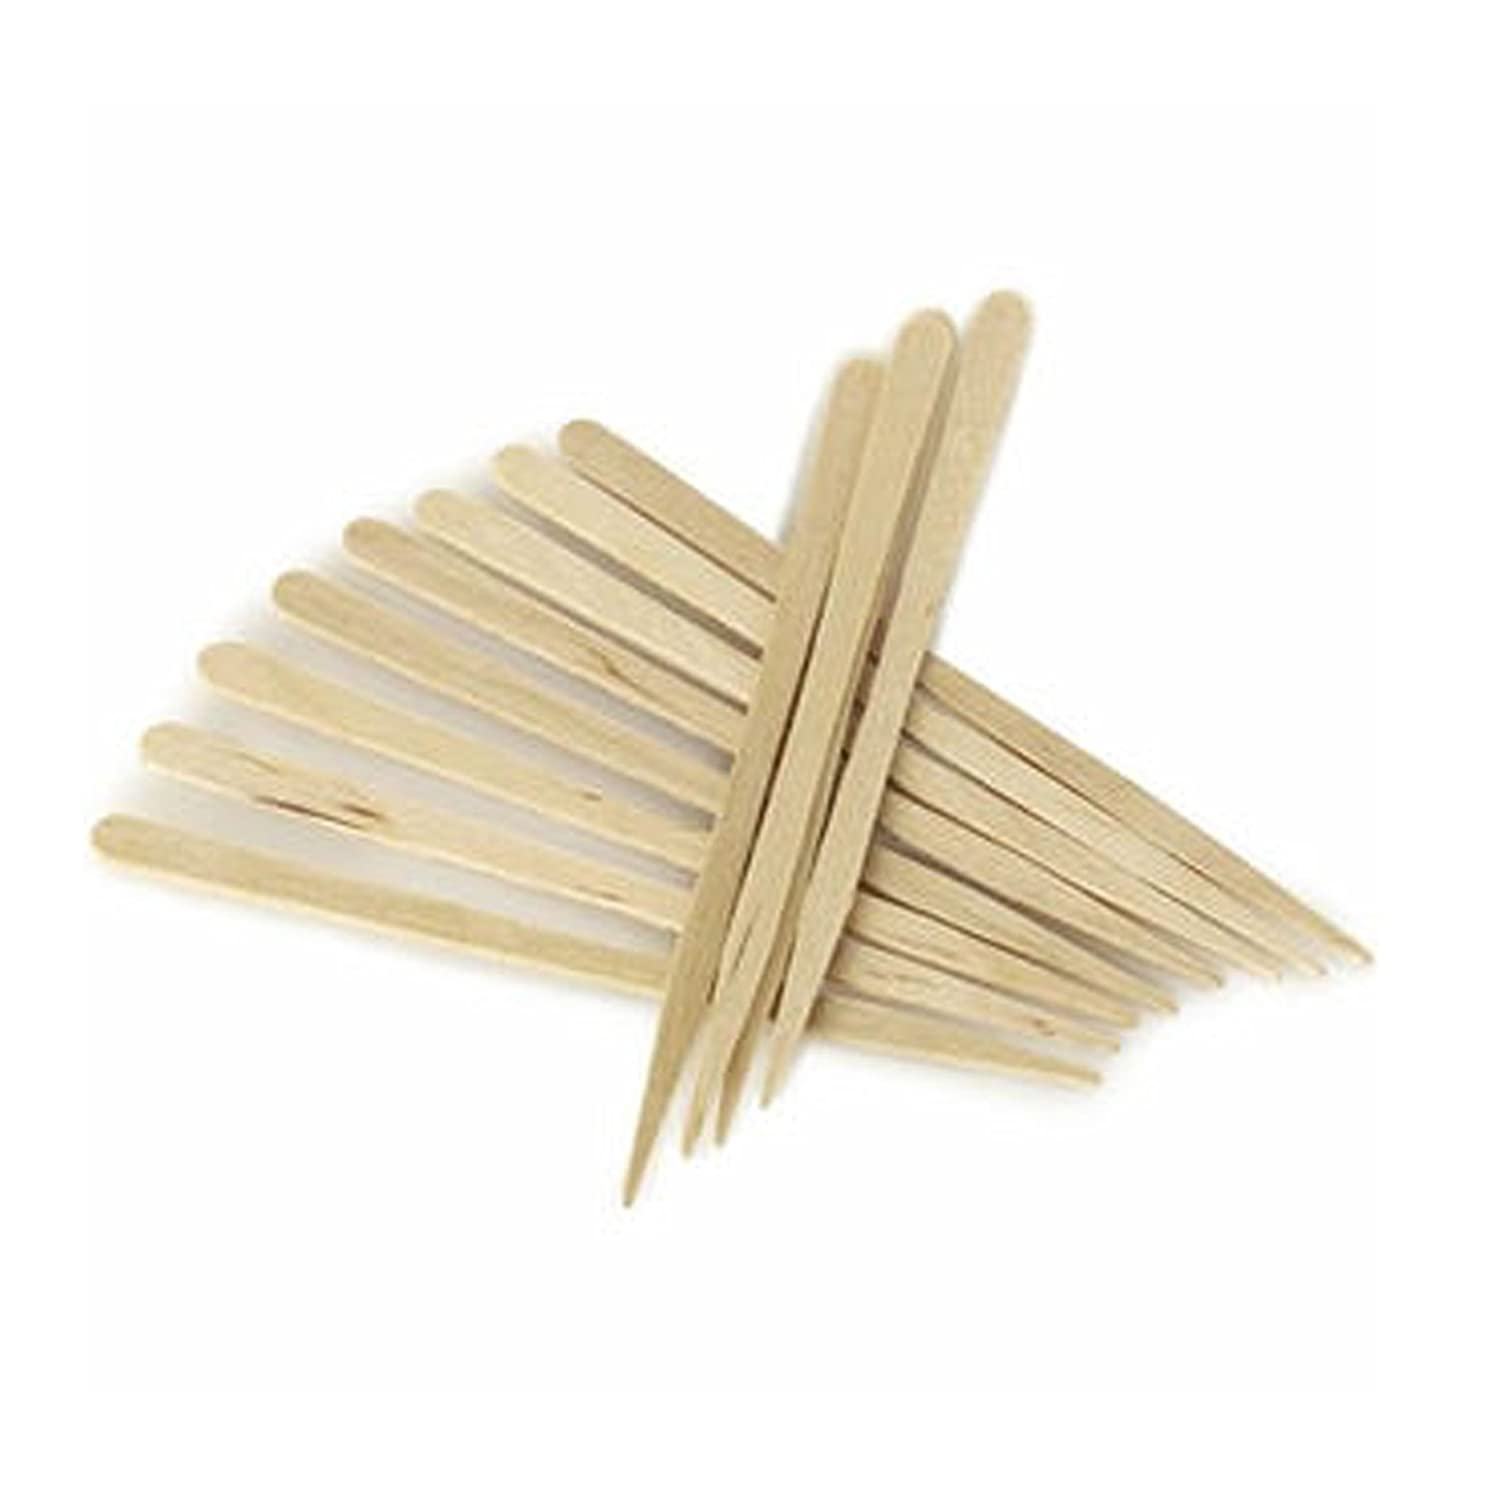 206 Eyebrow Small Wooden Wood Tongue Depressors Spatulas Wax Waxing Tatoo Sticks by Plain